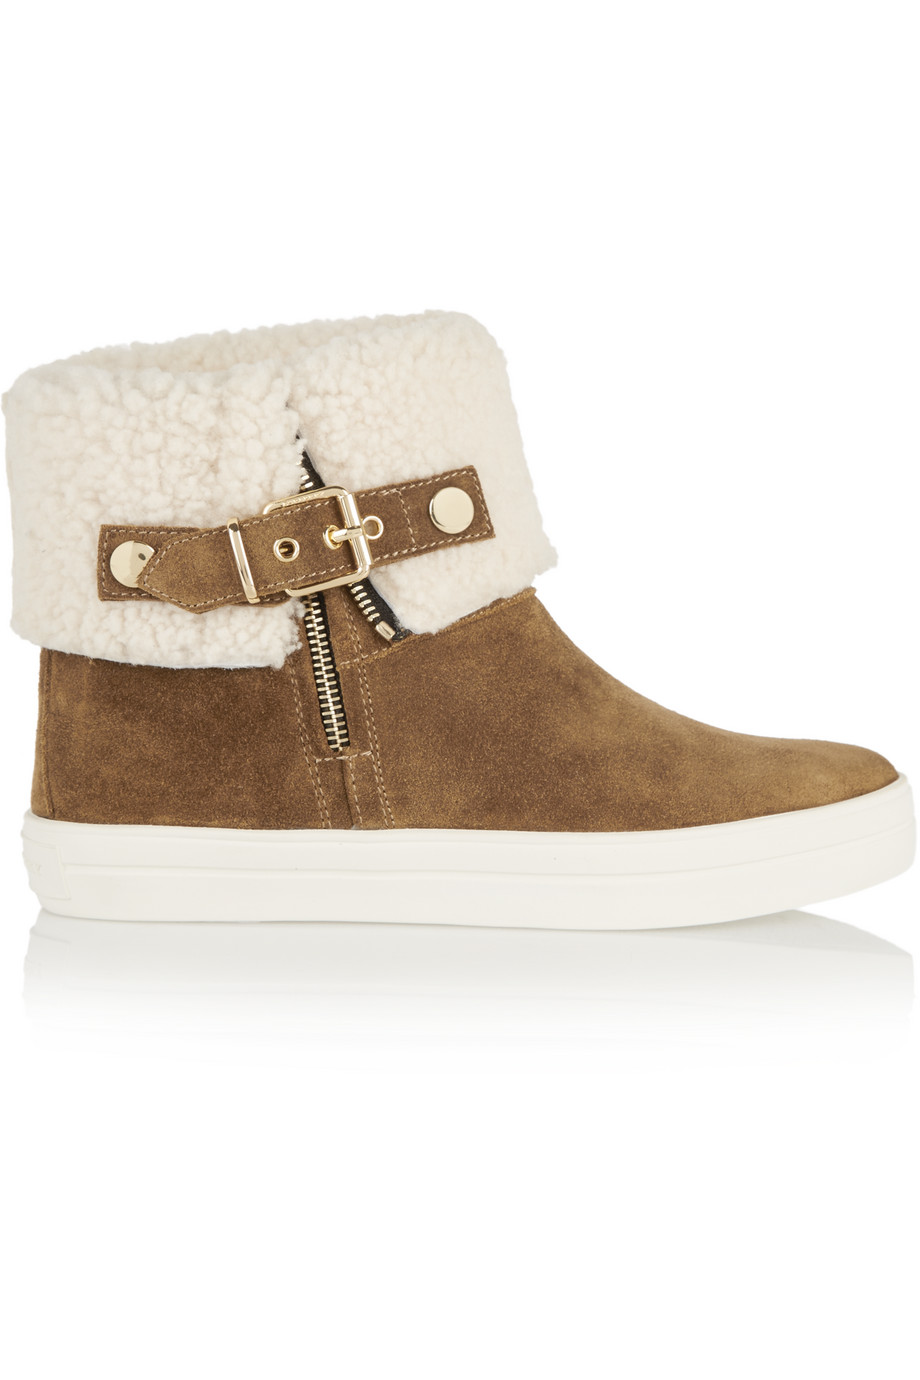 Burberry London London Shearling-Lined Suede Boots, Tan, Women's US Size: 4.5, Size: 35